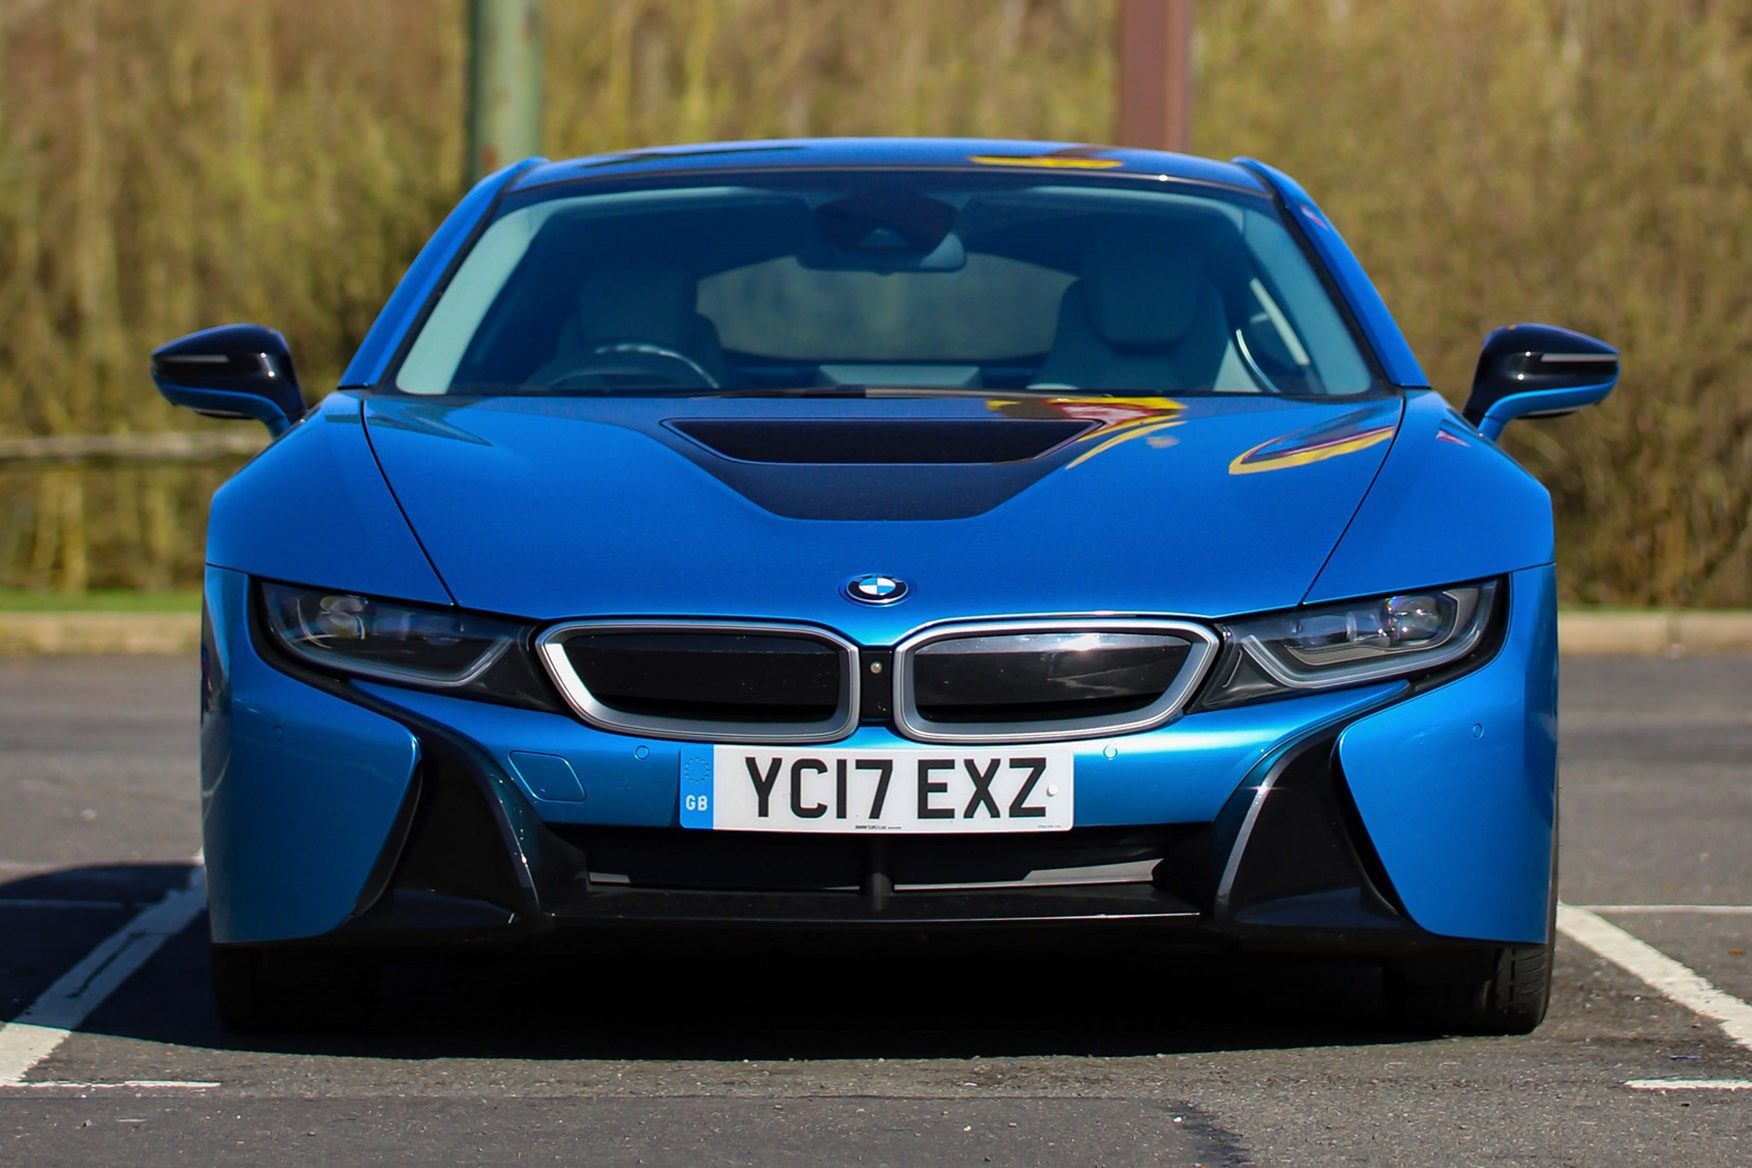 The Best BMWs You Can Buy Today recommendations